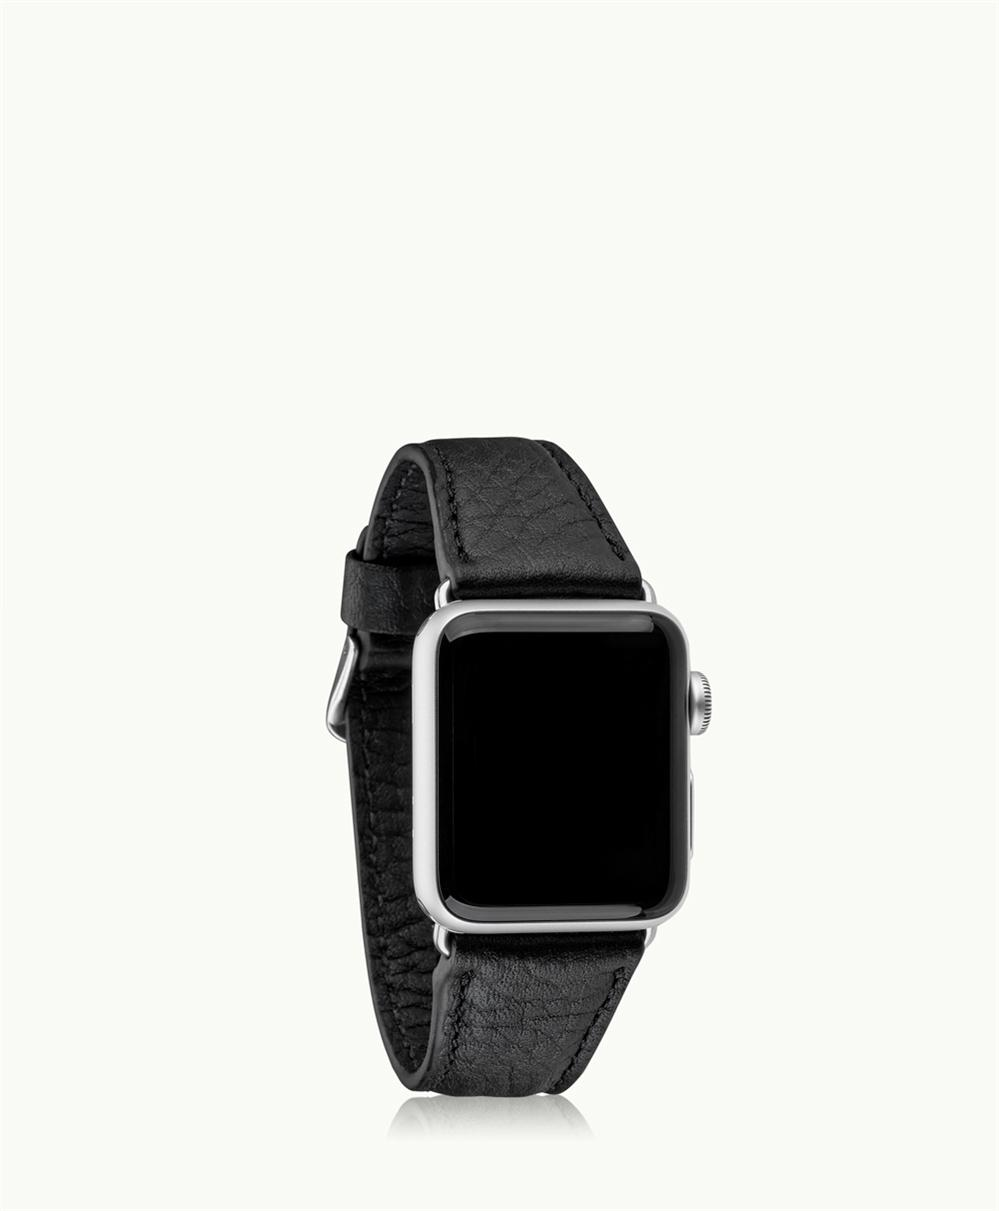 ... LEOPARD PRINT LEATHER WATCHBAND STRAP FOR APPLE WATCH SERIES 21 38MM INTL